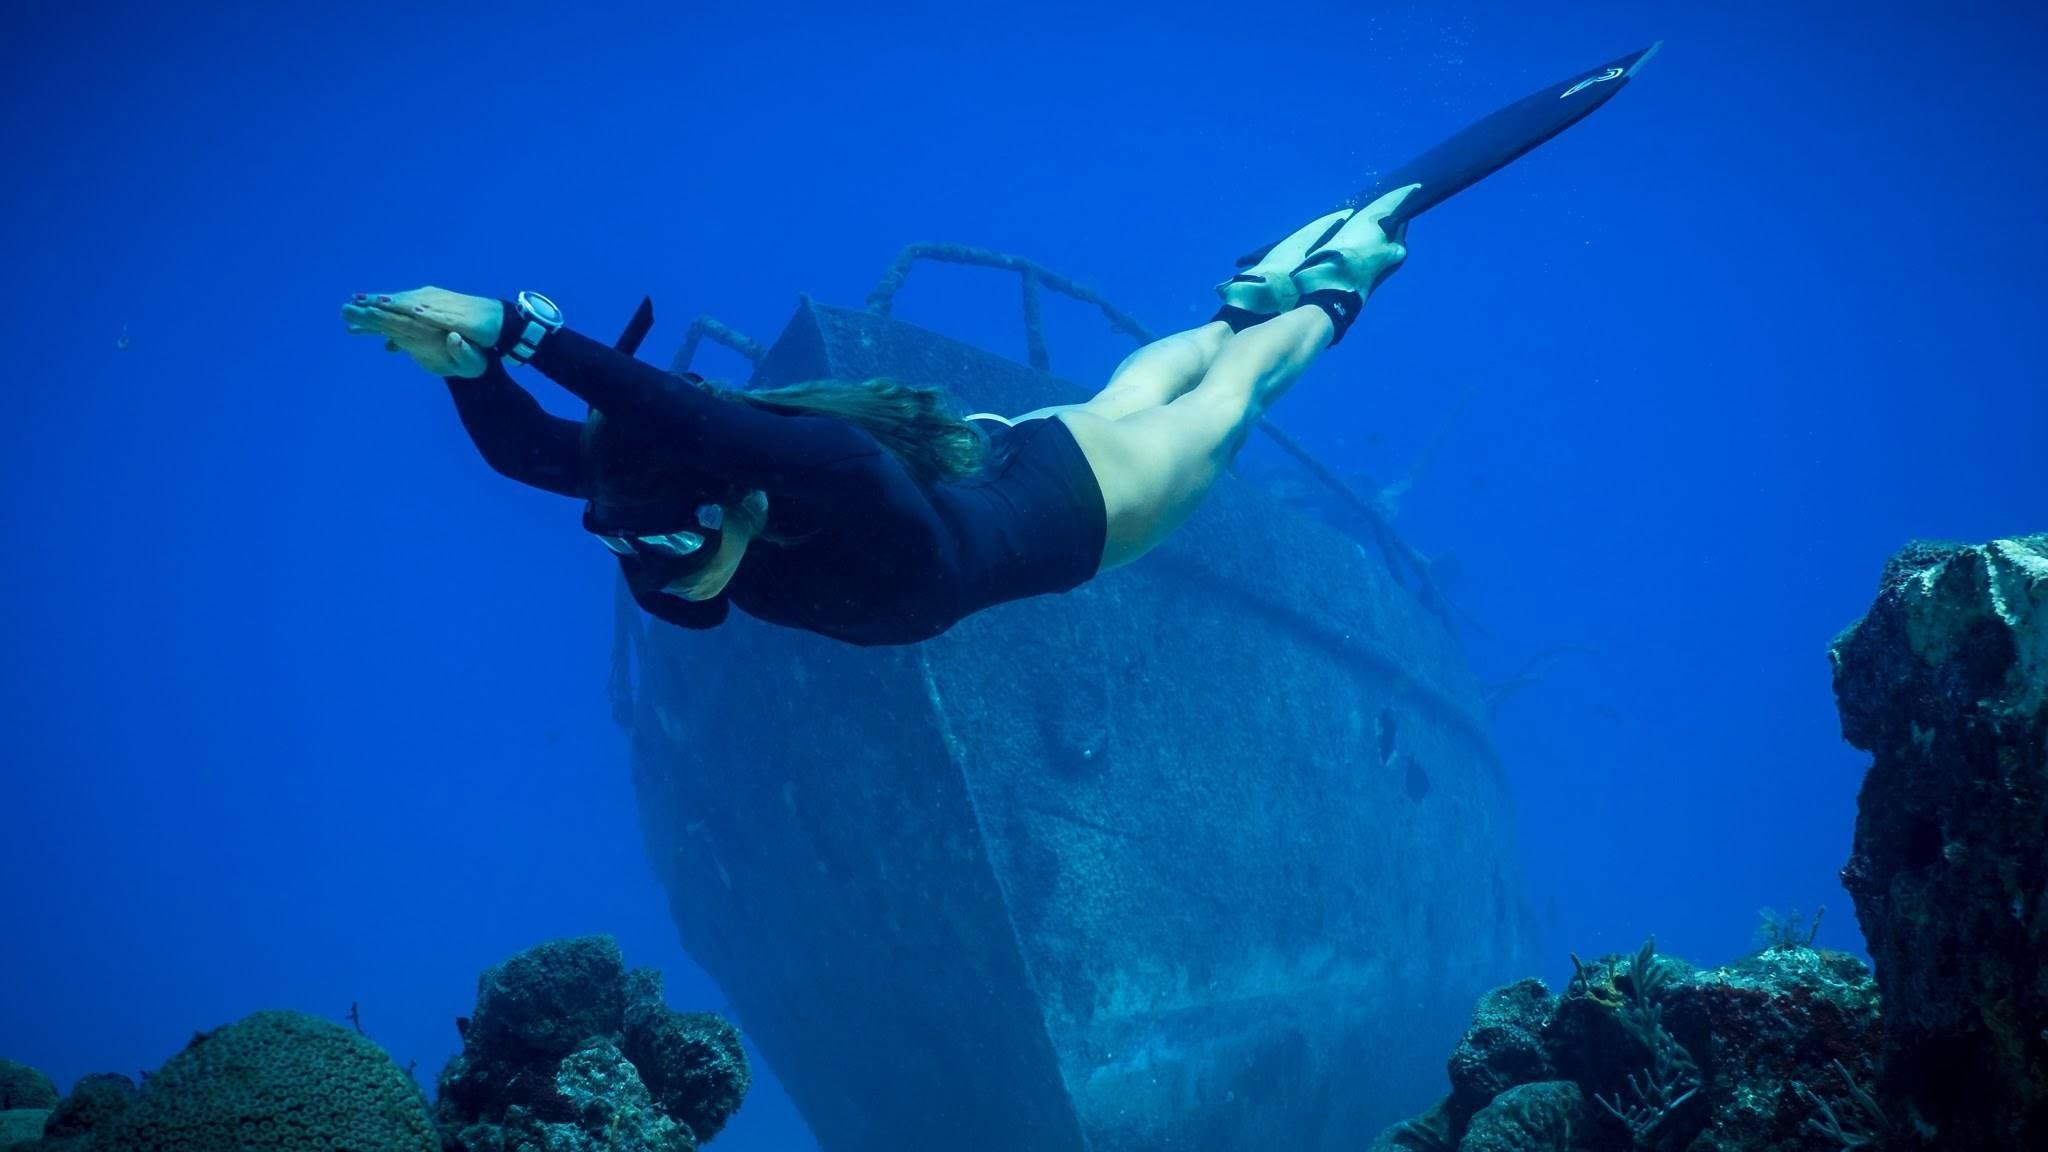 One Breath, One Catch: This Spear Fishing Adventure Is Amazing